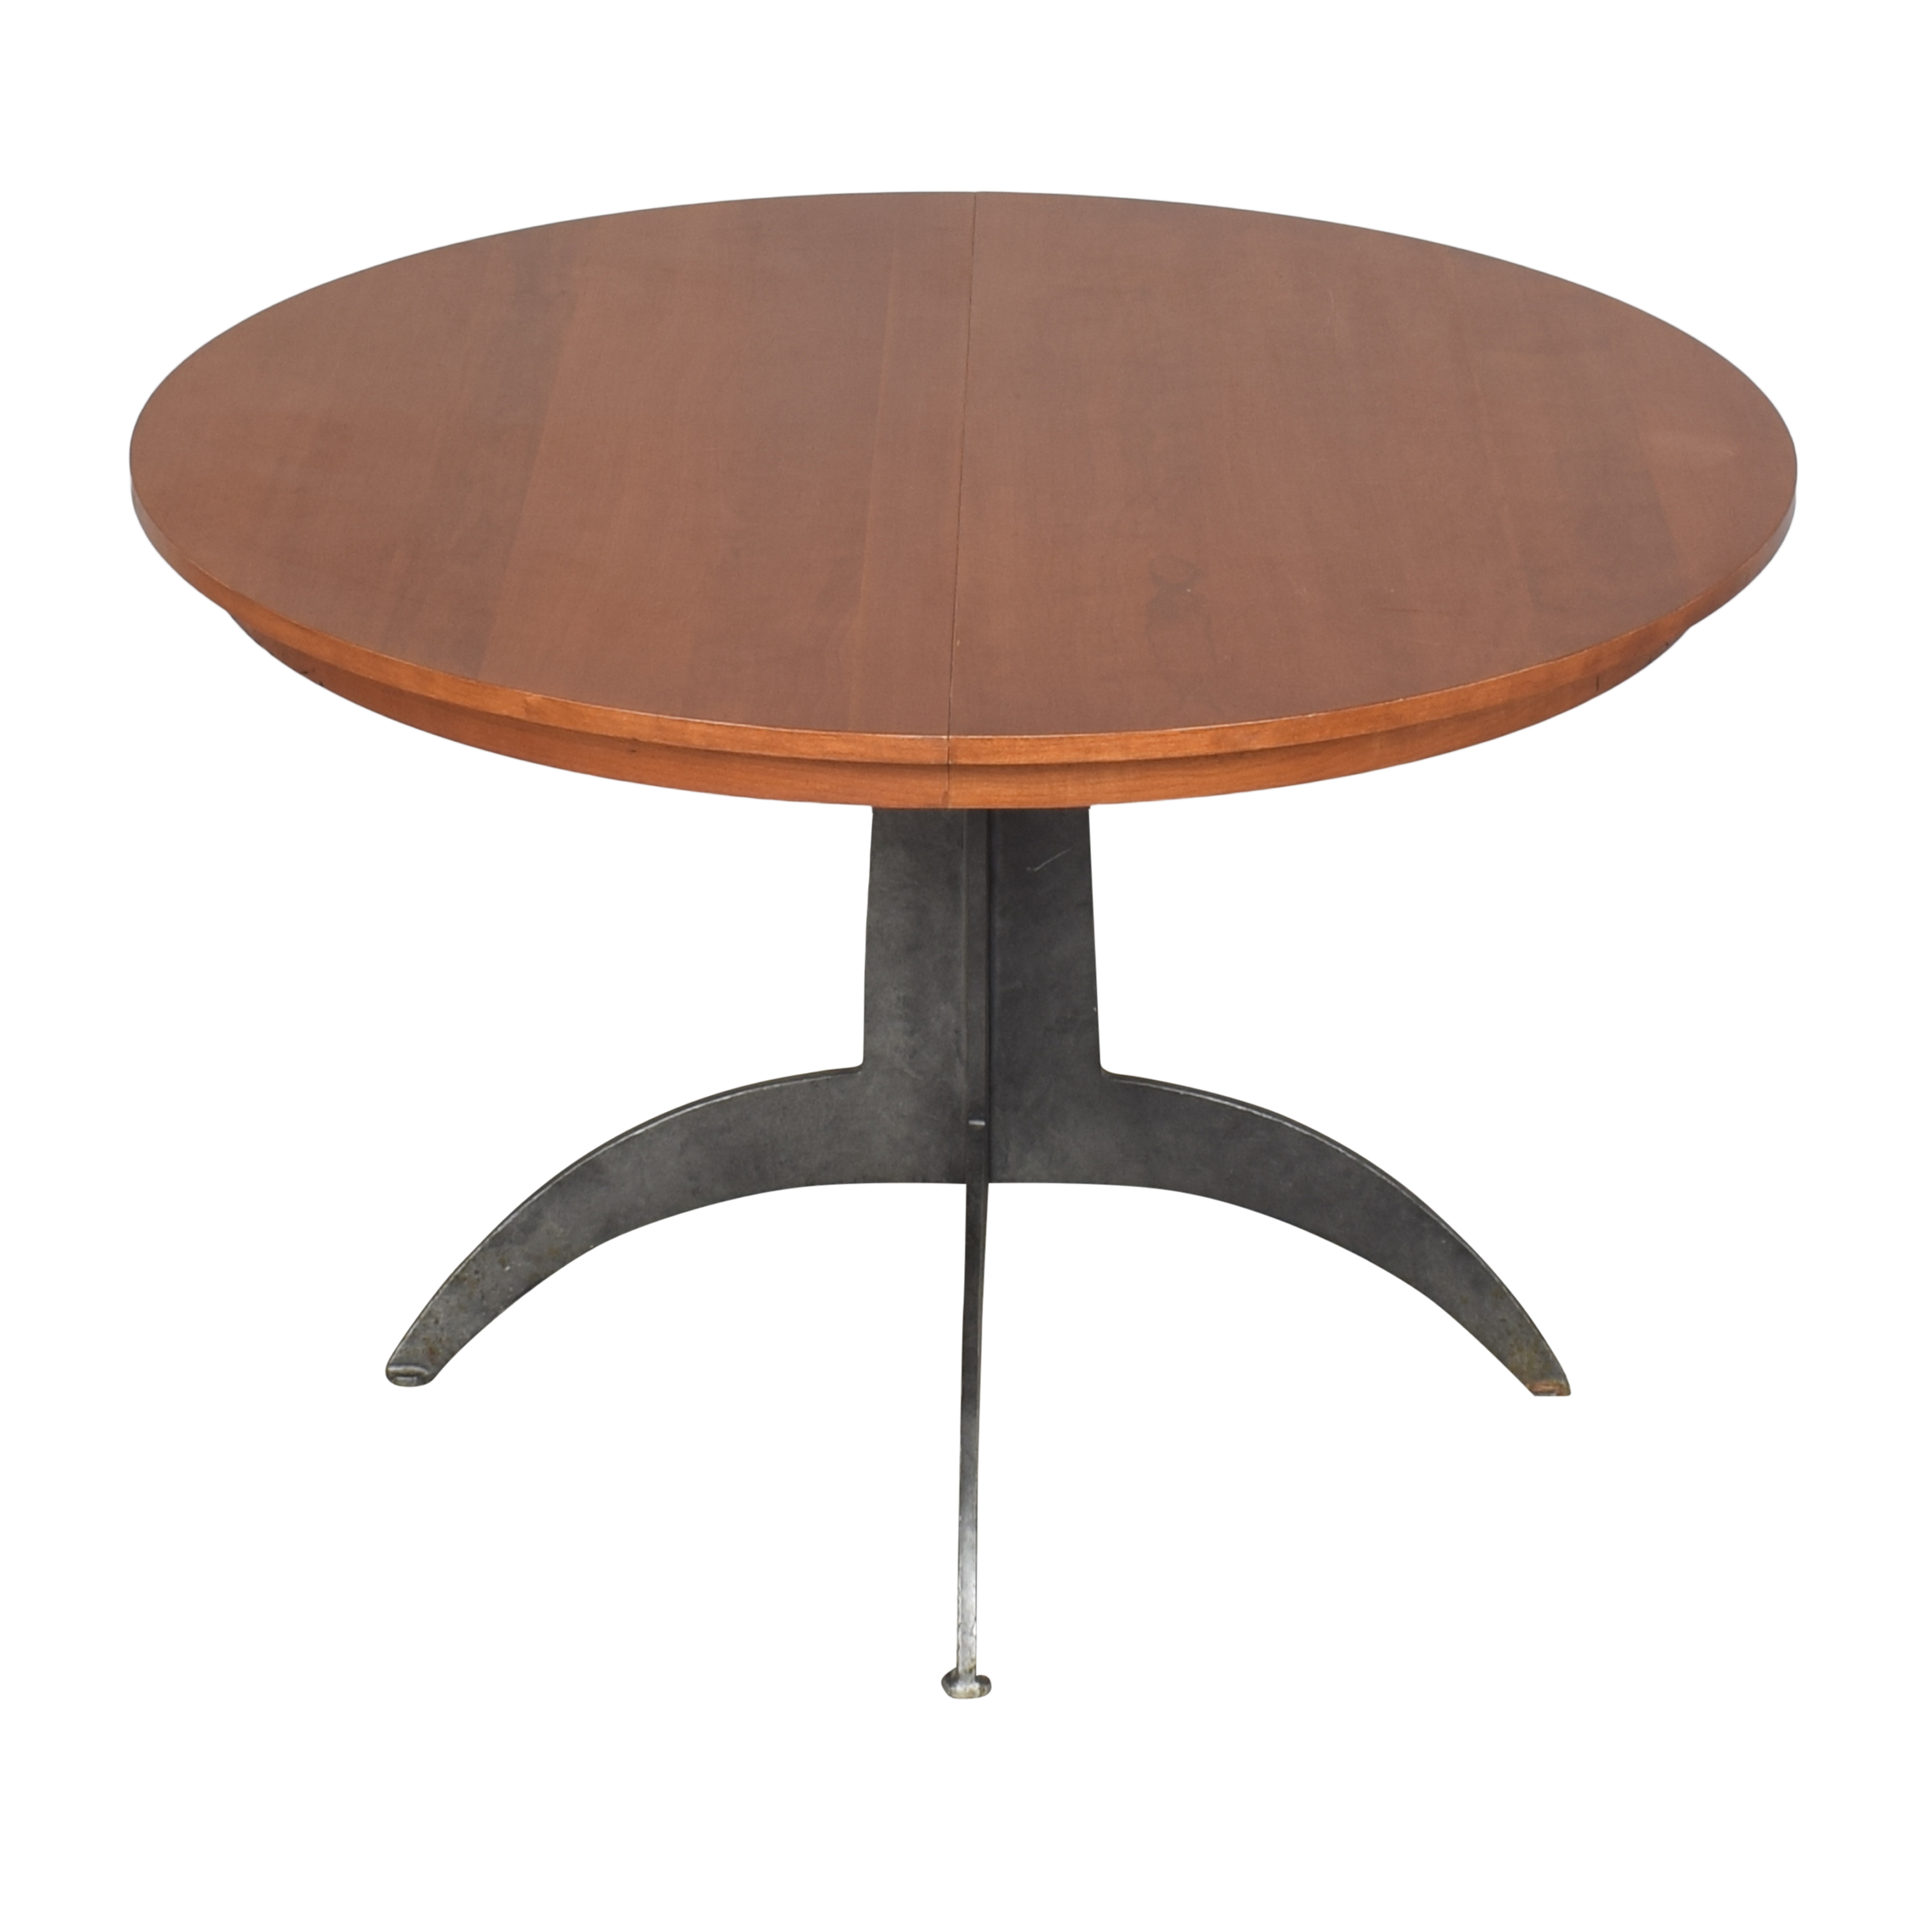 Ethan Allen Ethan Allen Round Extendable Dining Table second hand